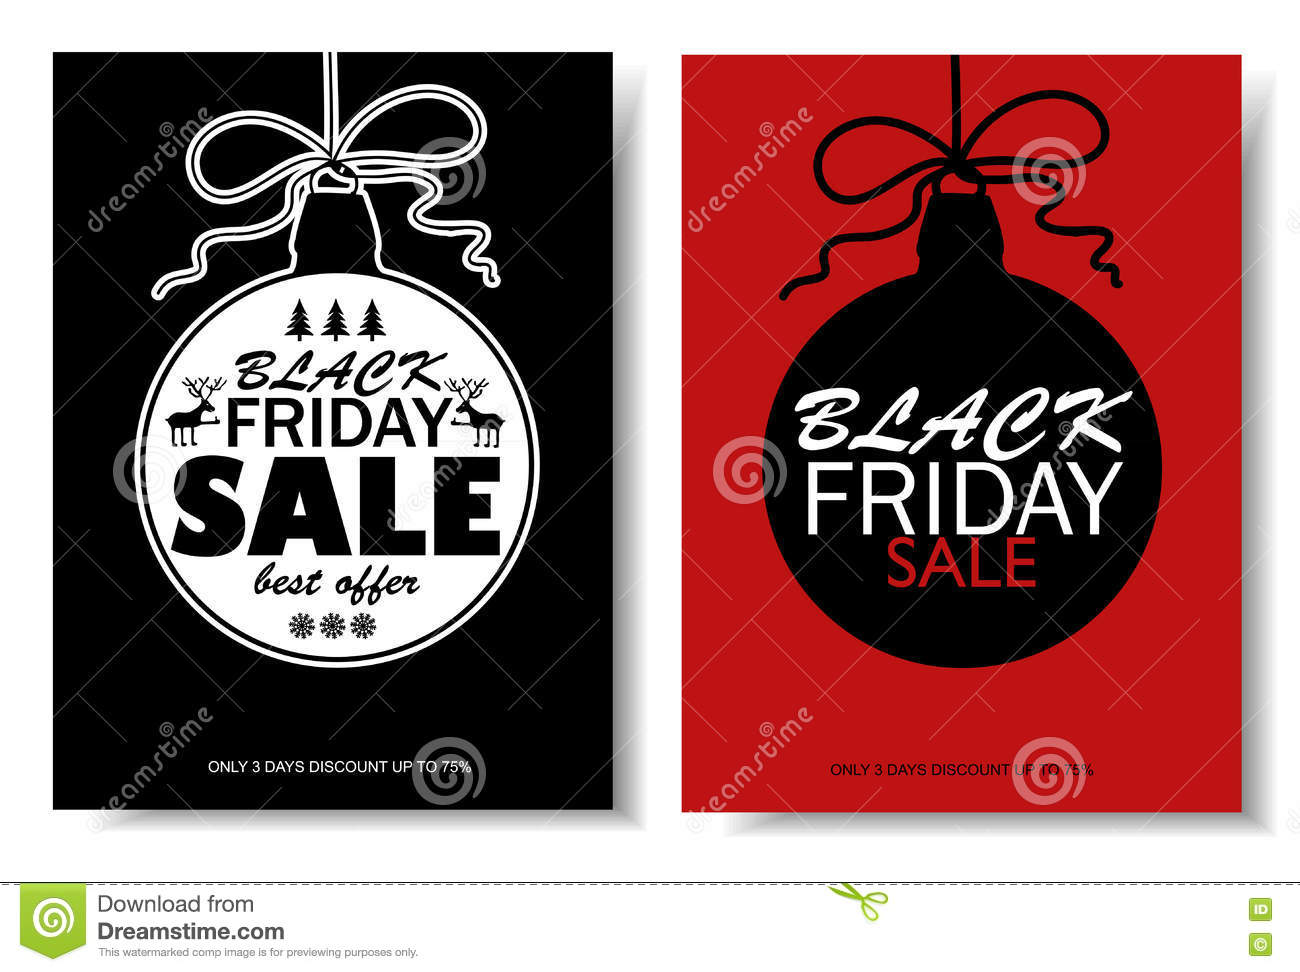 Black Friday Sale Banners With Christmas Ball Stock Vector Illustration Of Label Christmas 78520669